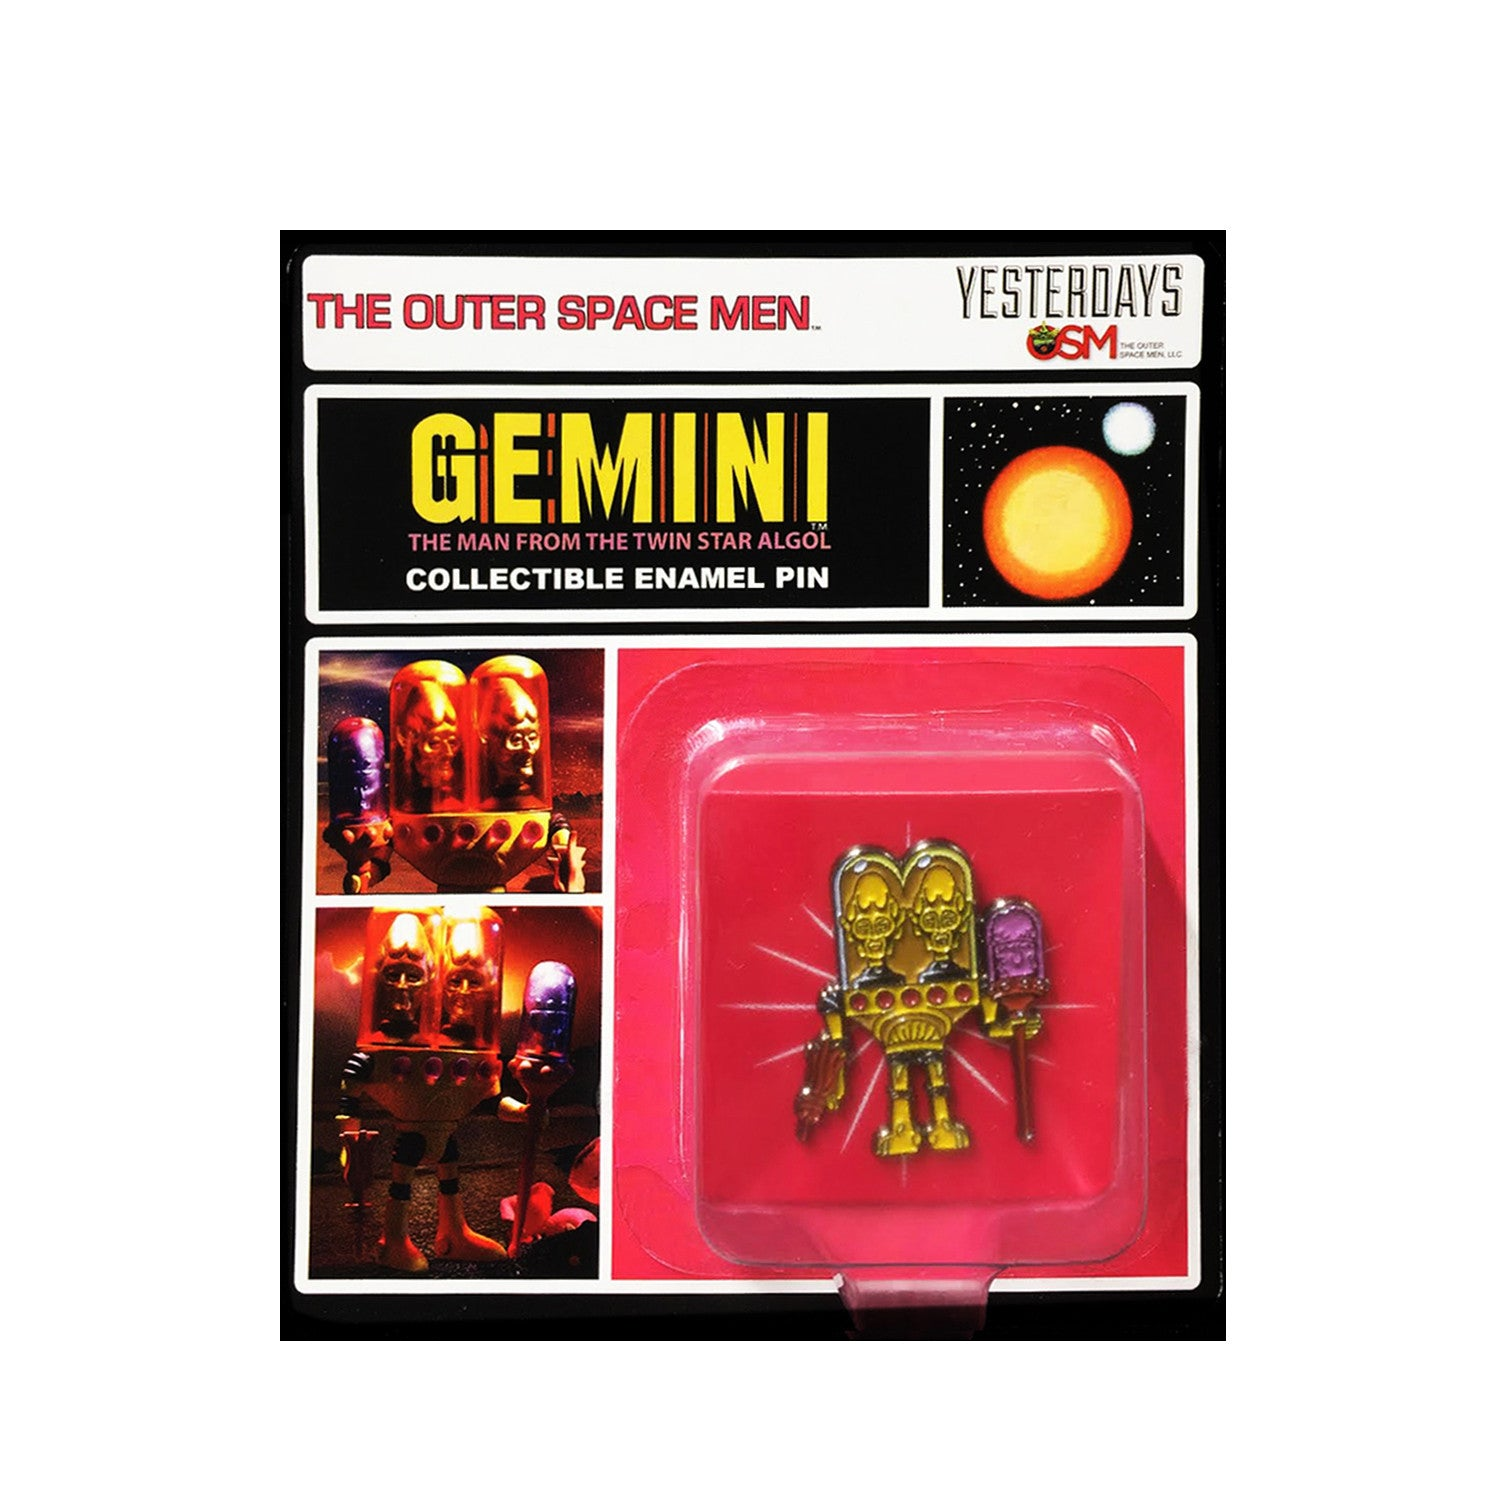 The Outer Space Men Gemini: The Man From the Twin Star Algol